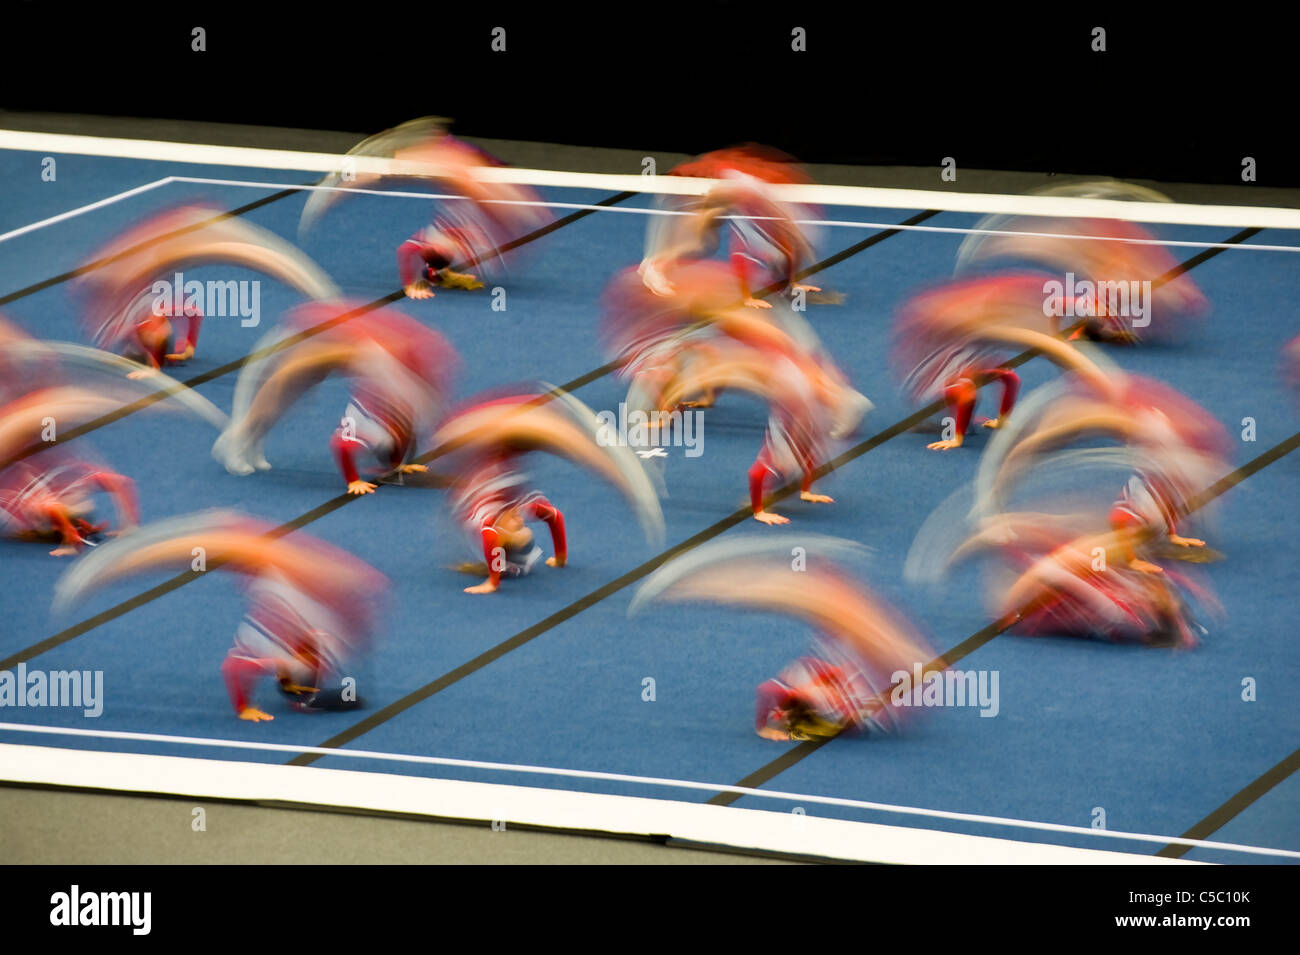 People in blurred motion at the gymnastics squad - Stock Image